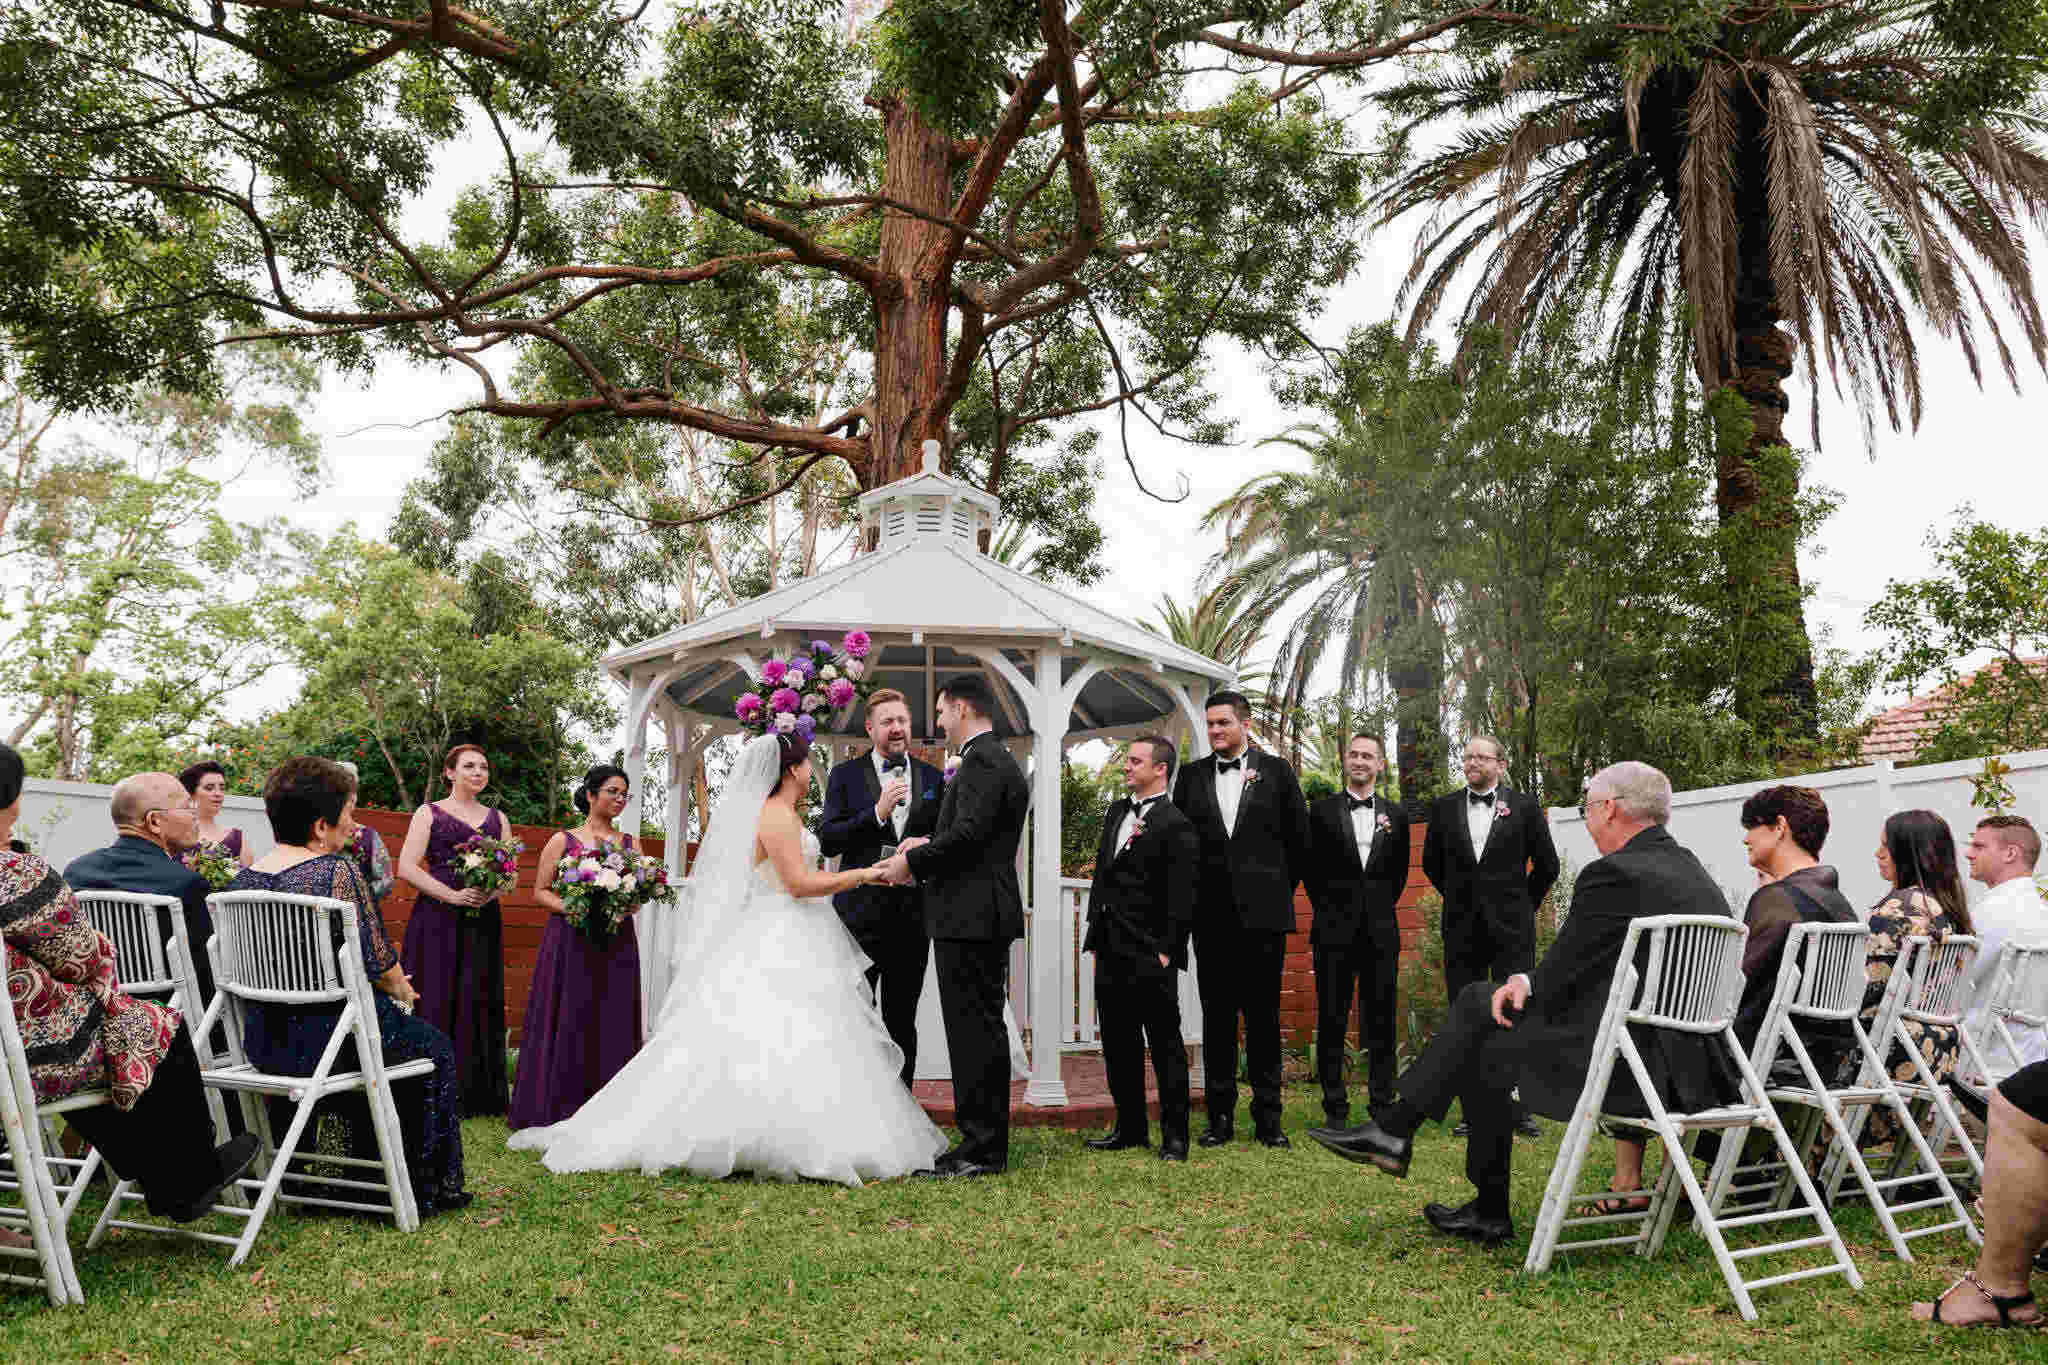 Cropley House Garden Wedding - Stephen Lee Marriage Celebrant Sydney Male